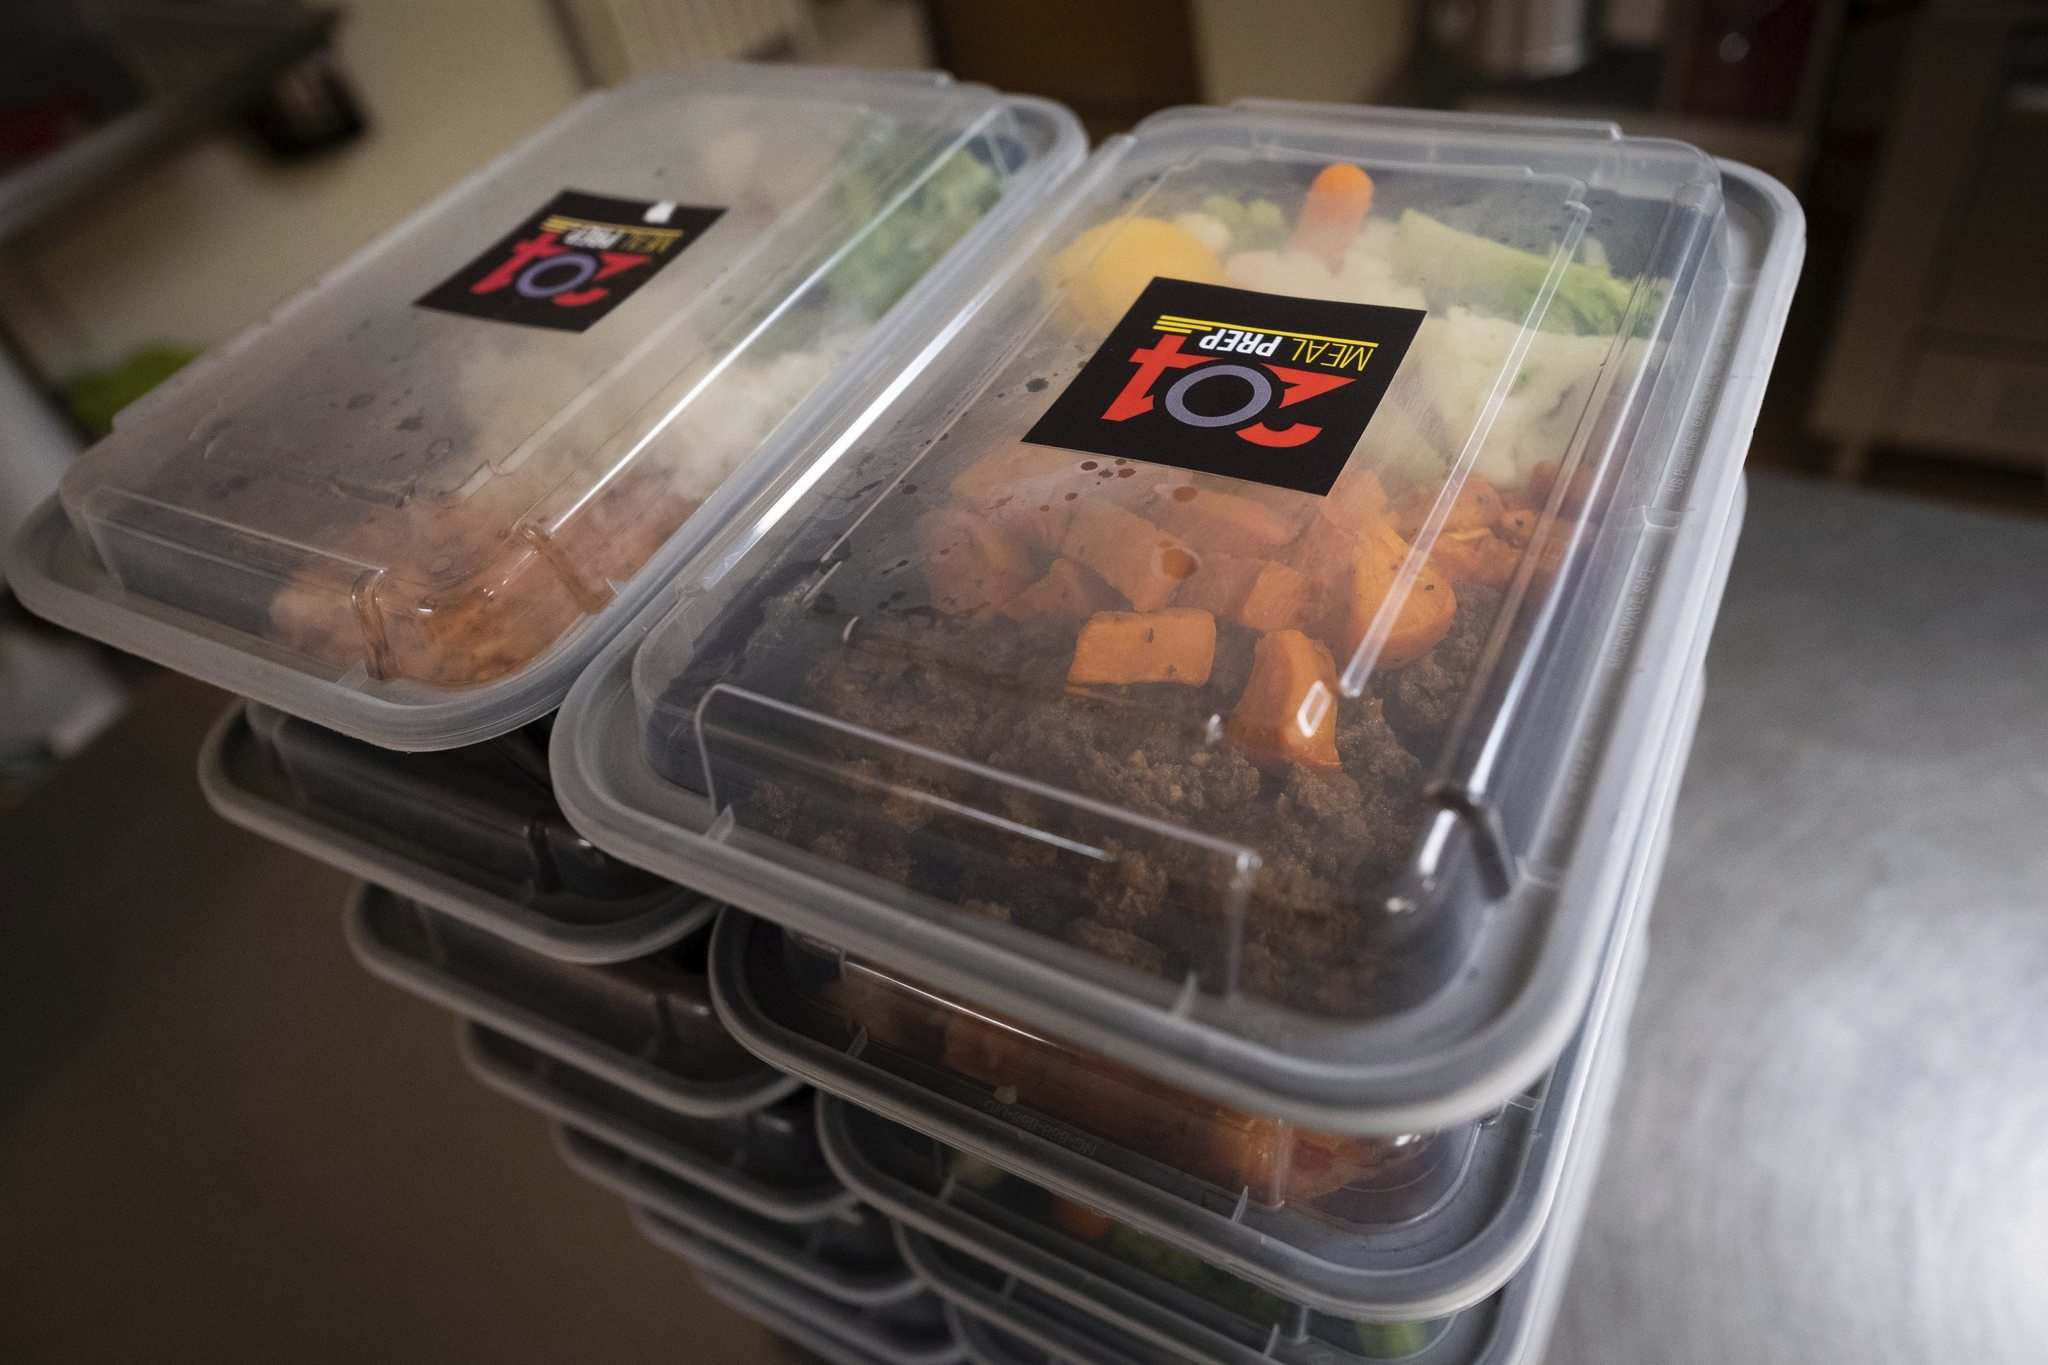 Daniel Crump / Winnipeg Free Press</p><p>Anthony Halyckyj uses reusable plastic containers to deliver his meals.</p>